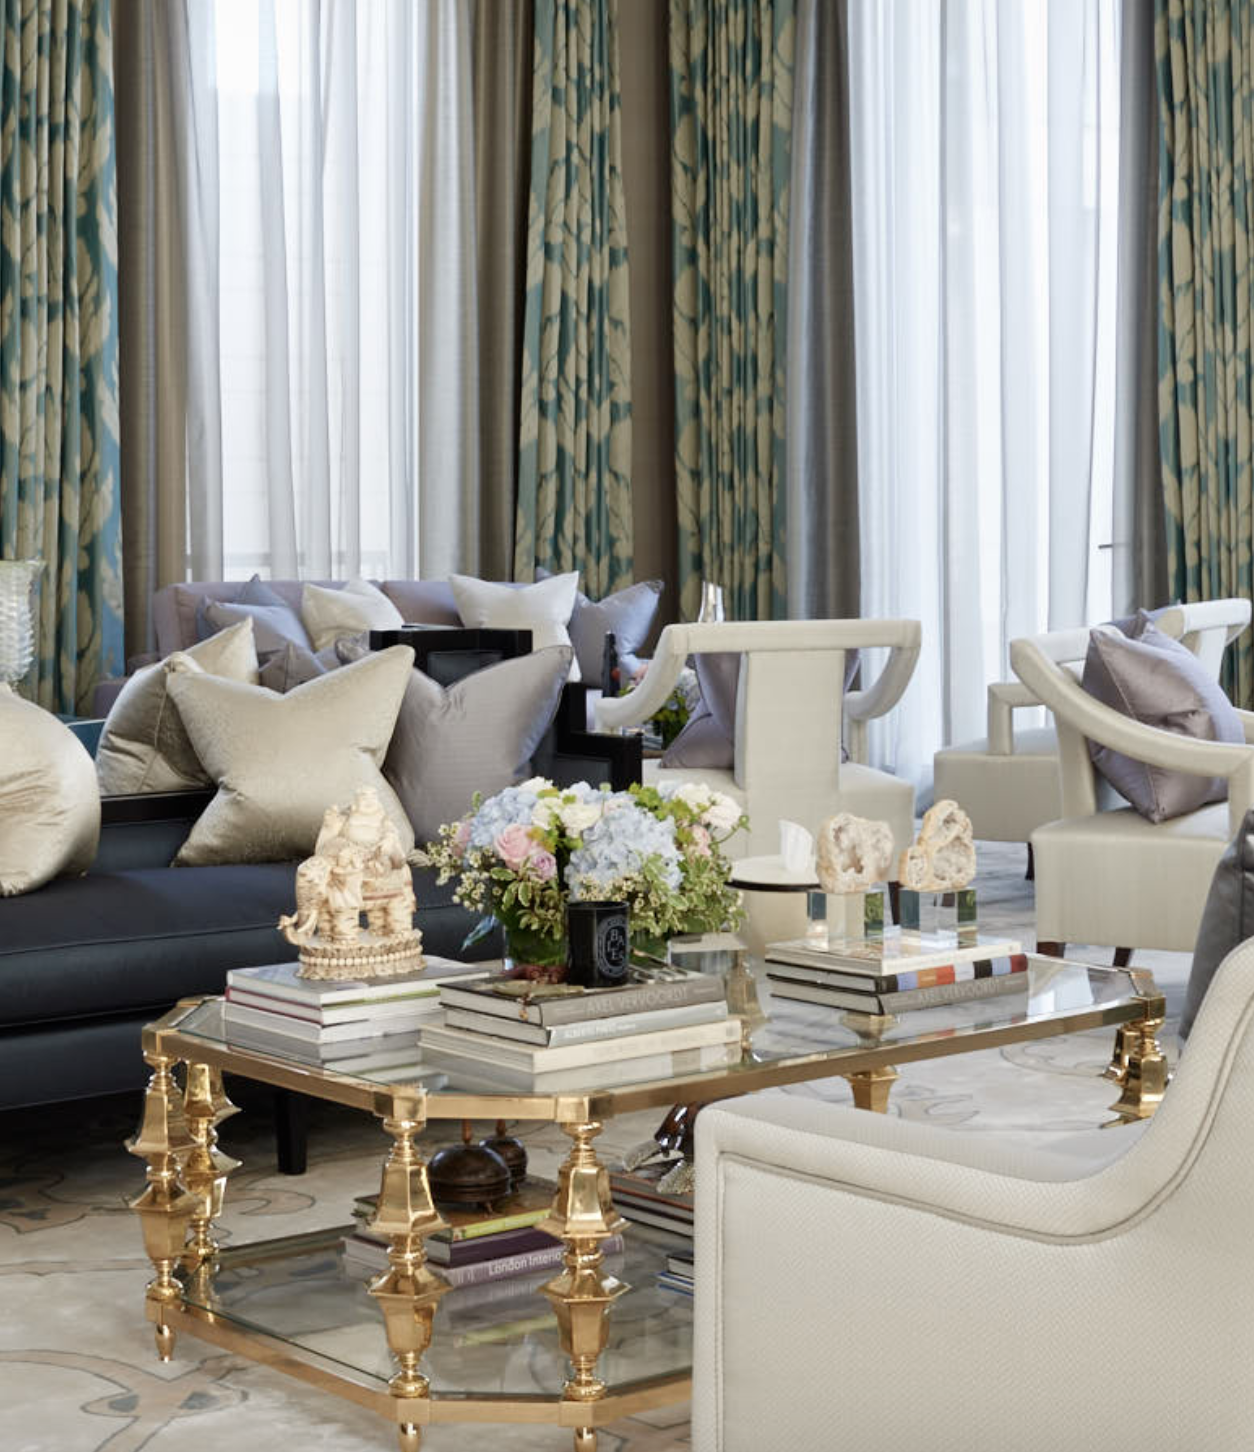 Katharine Pooley Luxury Elegant And Beautiful Living Room With Gold Center Table Best Top Famous Luxurious High End Interior Designers For More Decor Inspir